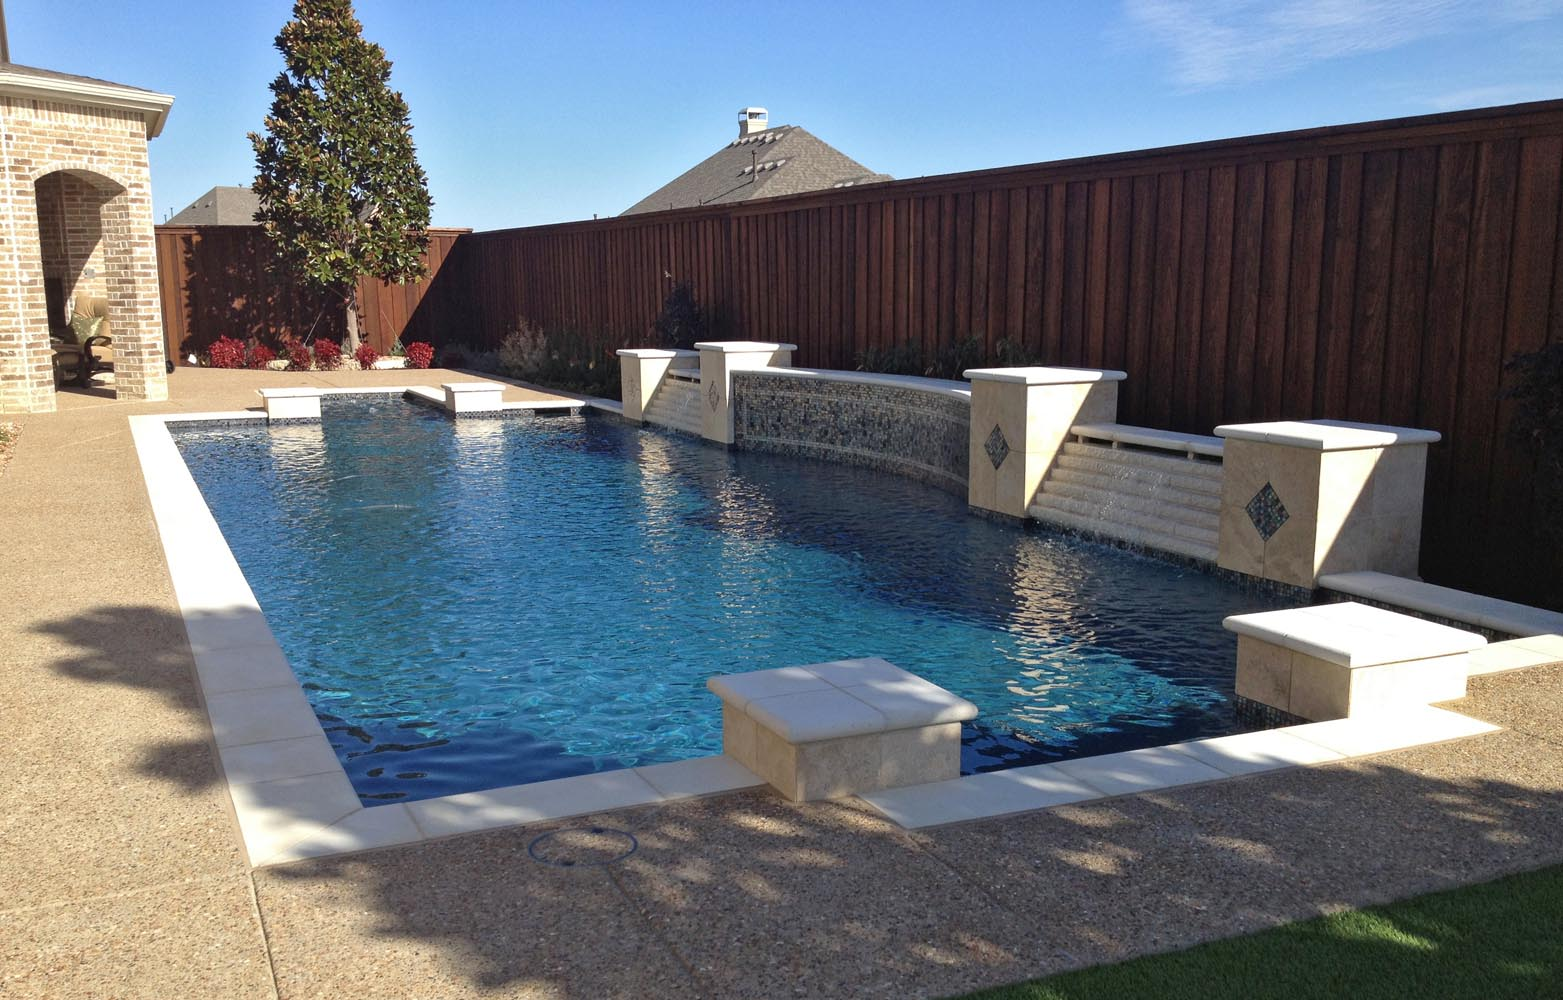 Dallas plano pool fountains custom water features gallery - Fibreglass swimming pool bond beam ...